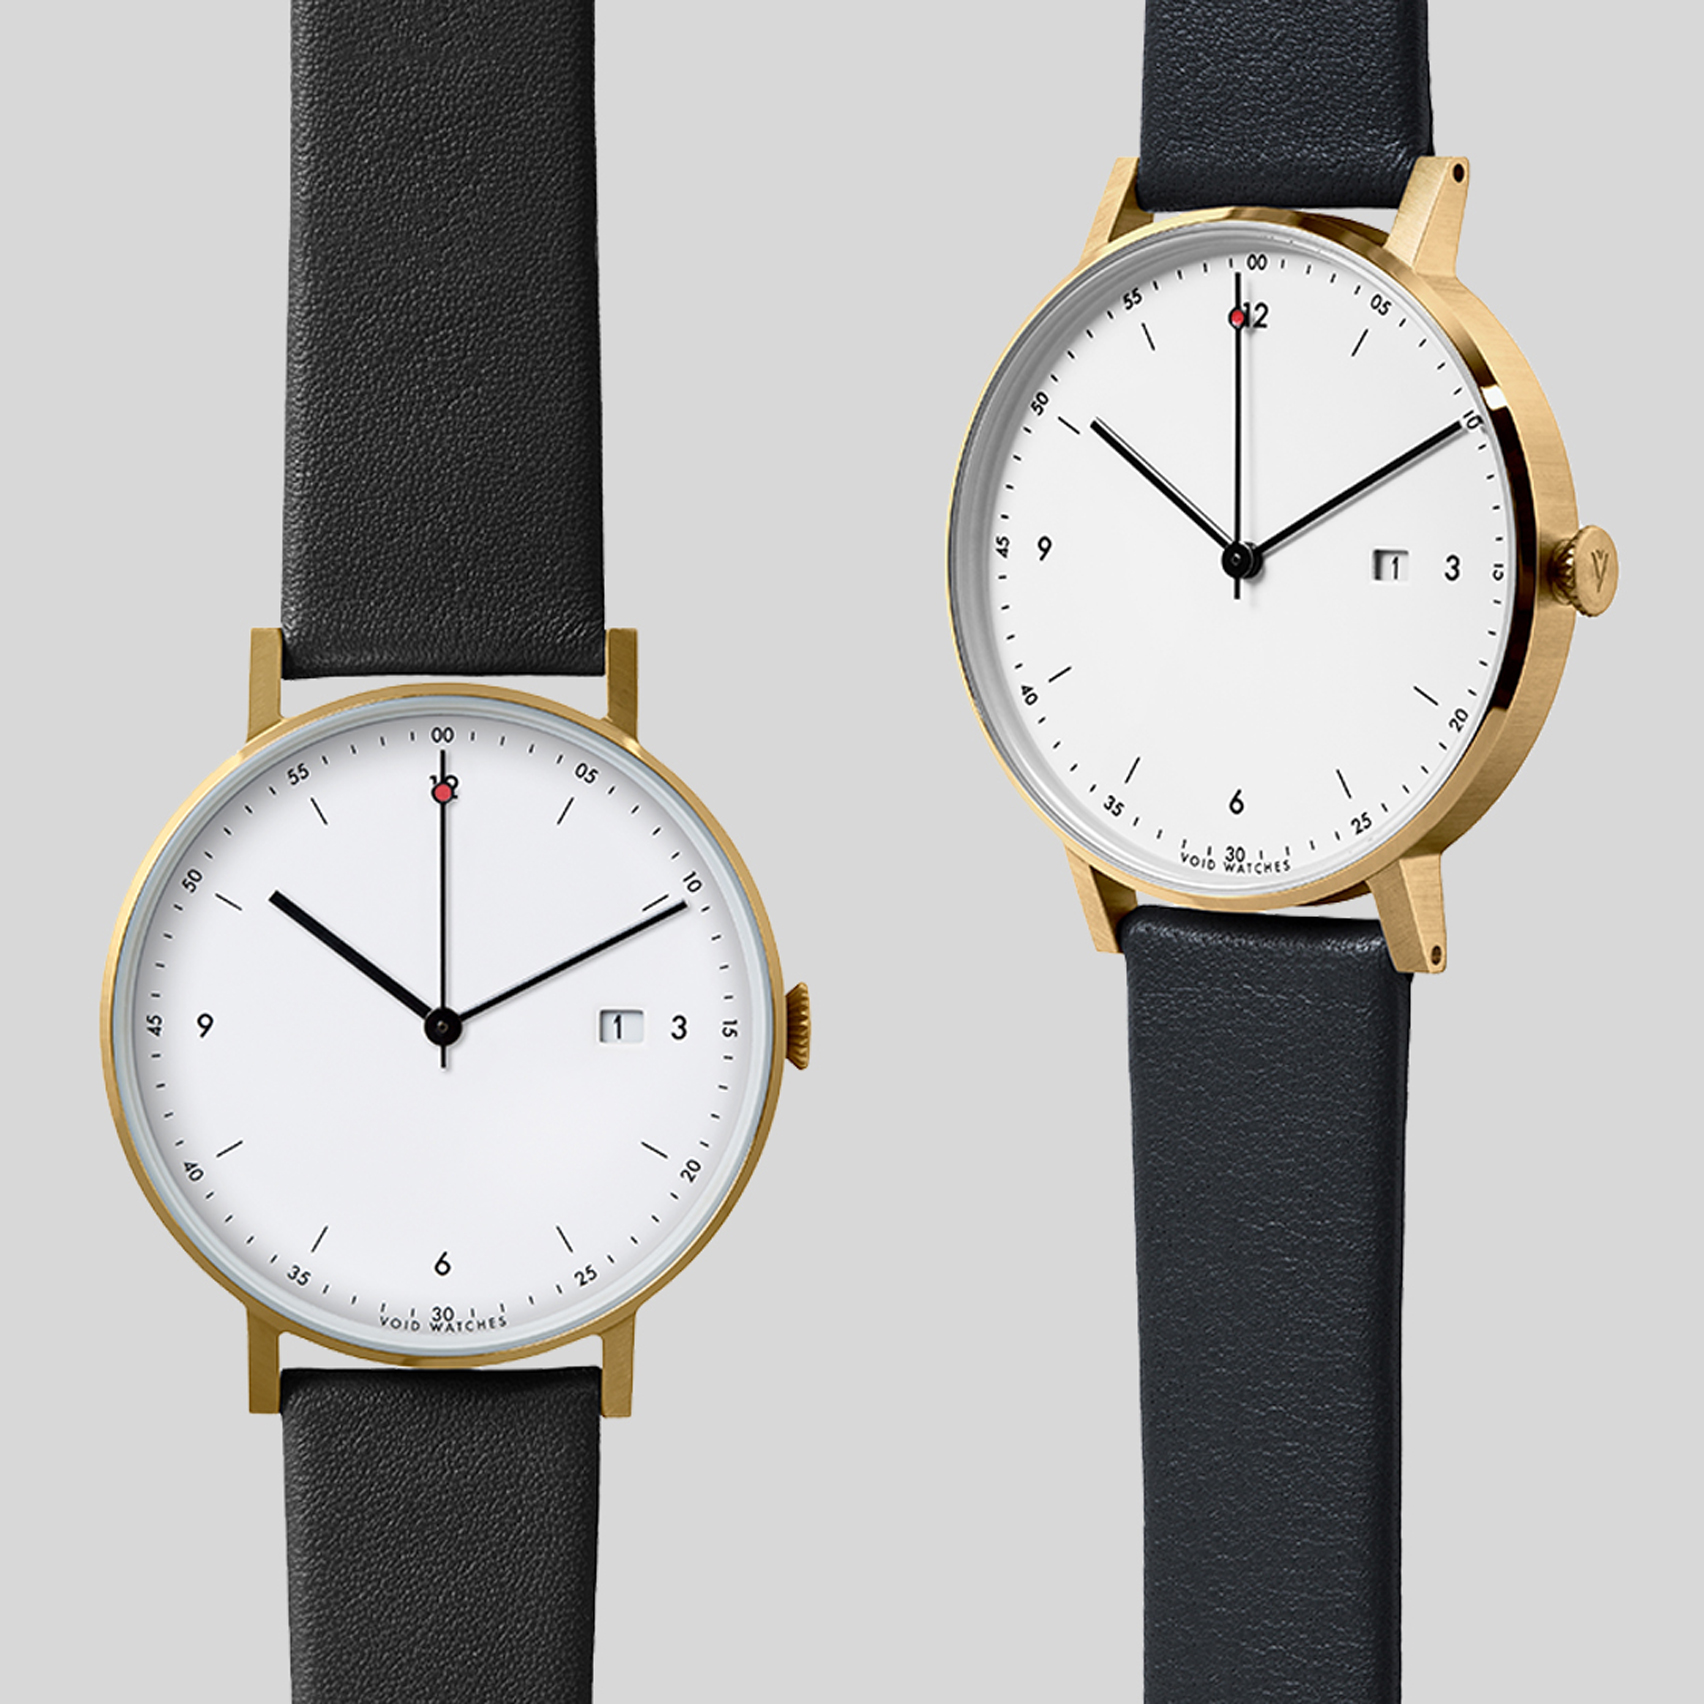 Dezeen Watch Store's fastest-selling timepiece launches in new colour